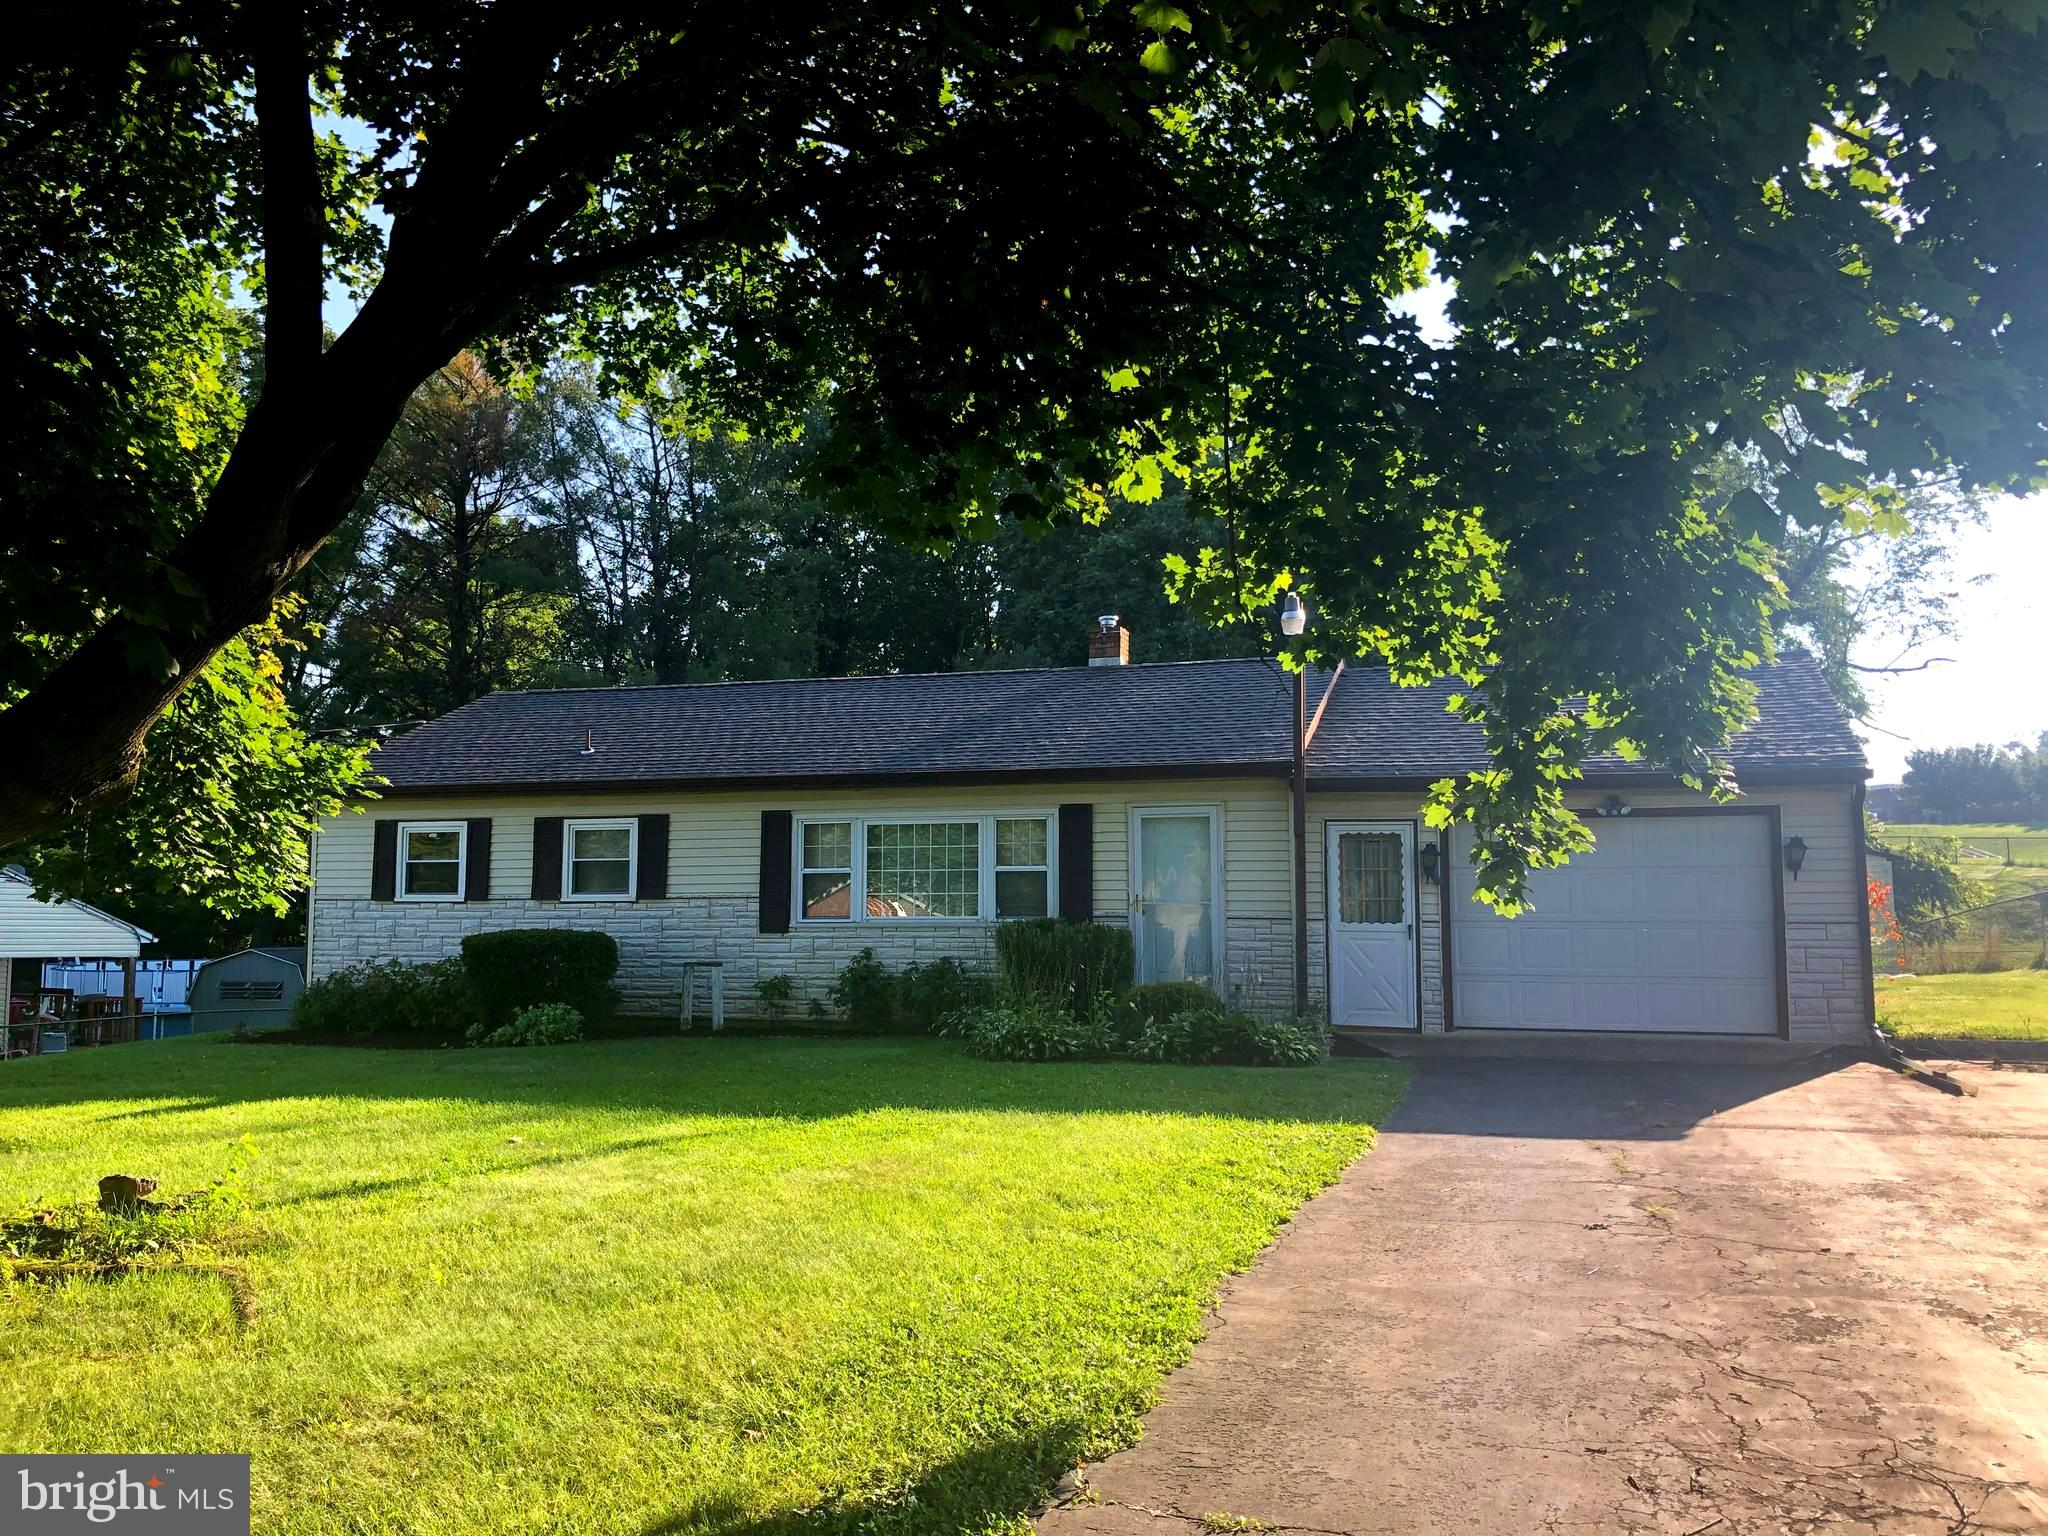 202 MCLAND ROAD, MOUNT HOLLY SPRINGS, PA 17065